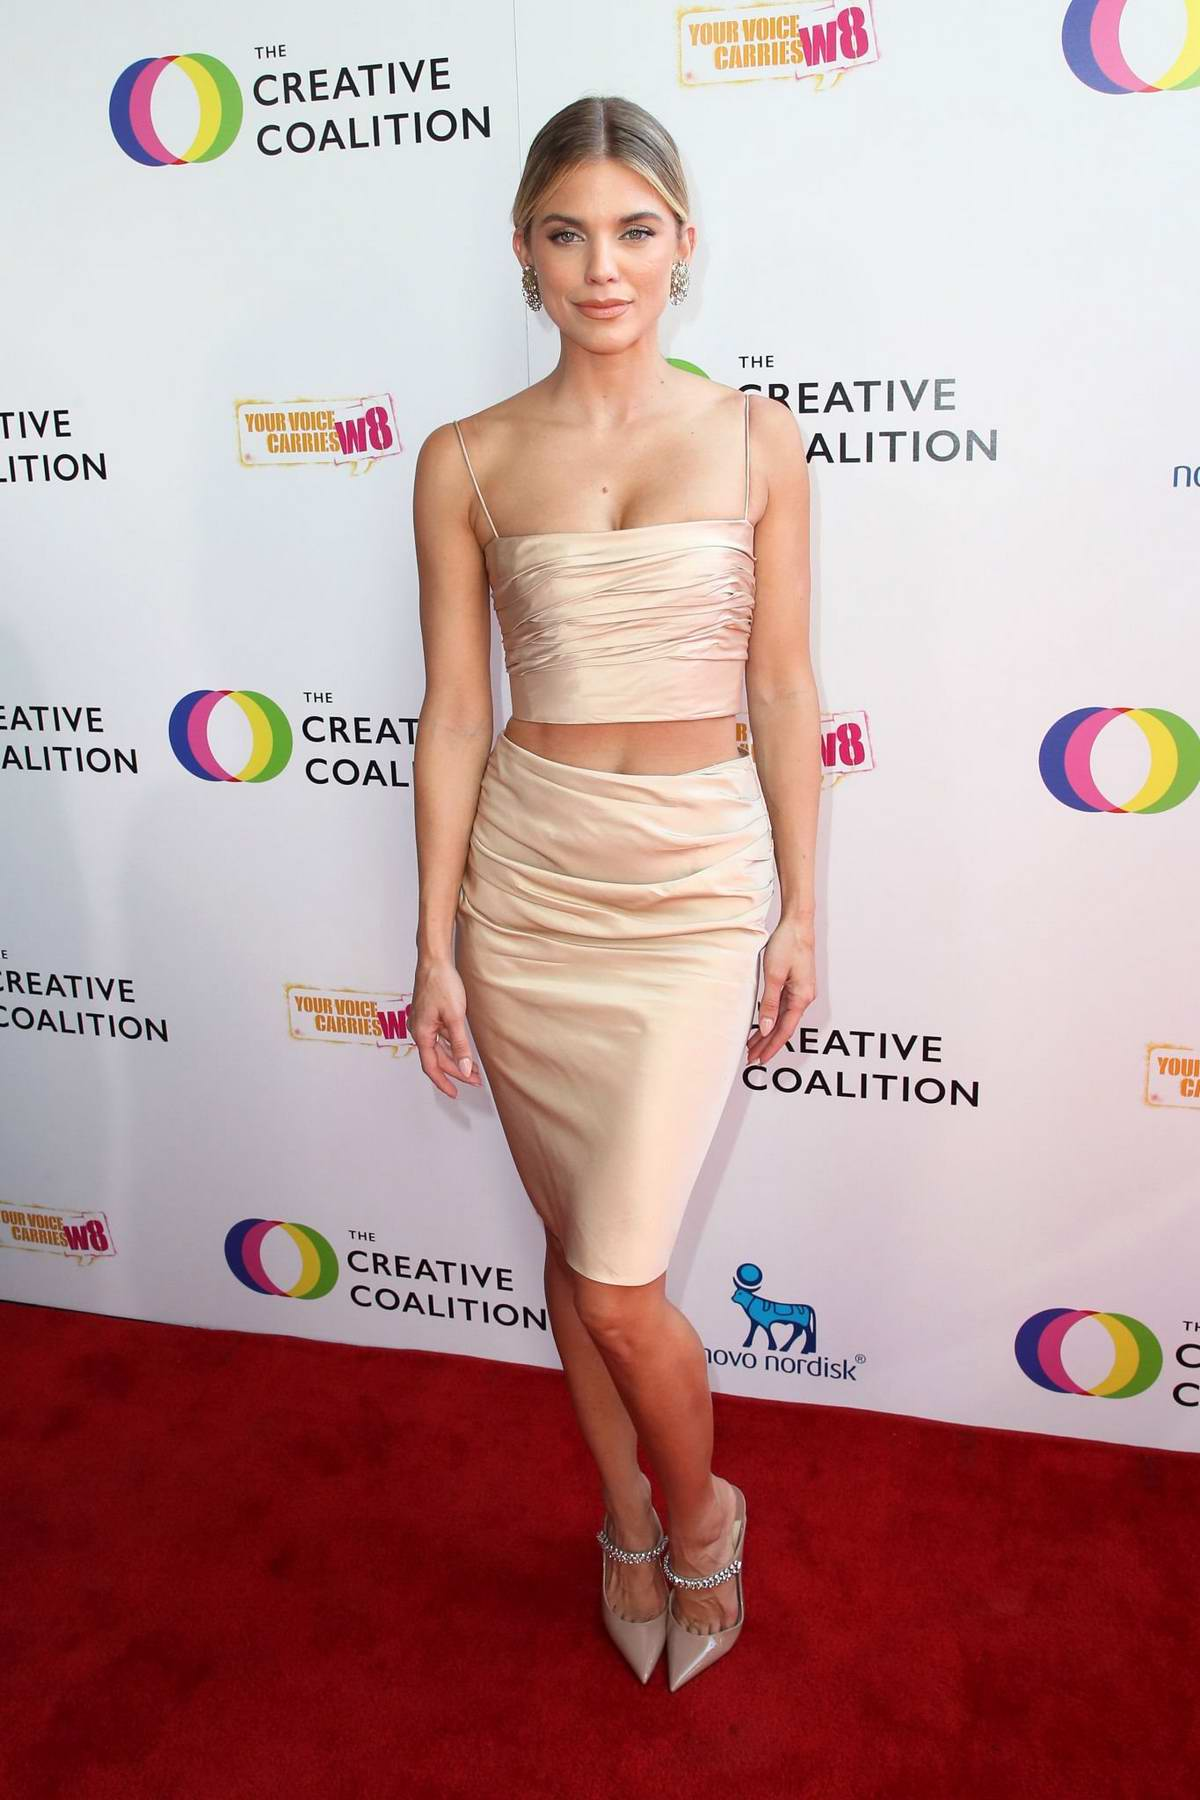 AnnaLynne McCord attends The Creative Coalition's Annual Television Humanitarian Awards Gala in Beverly Hills, Los Angeles